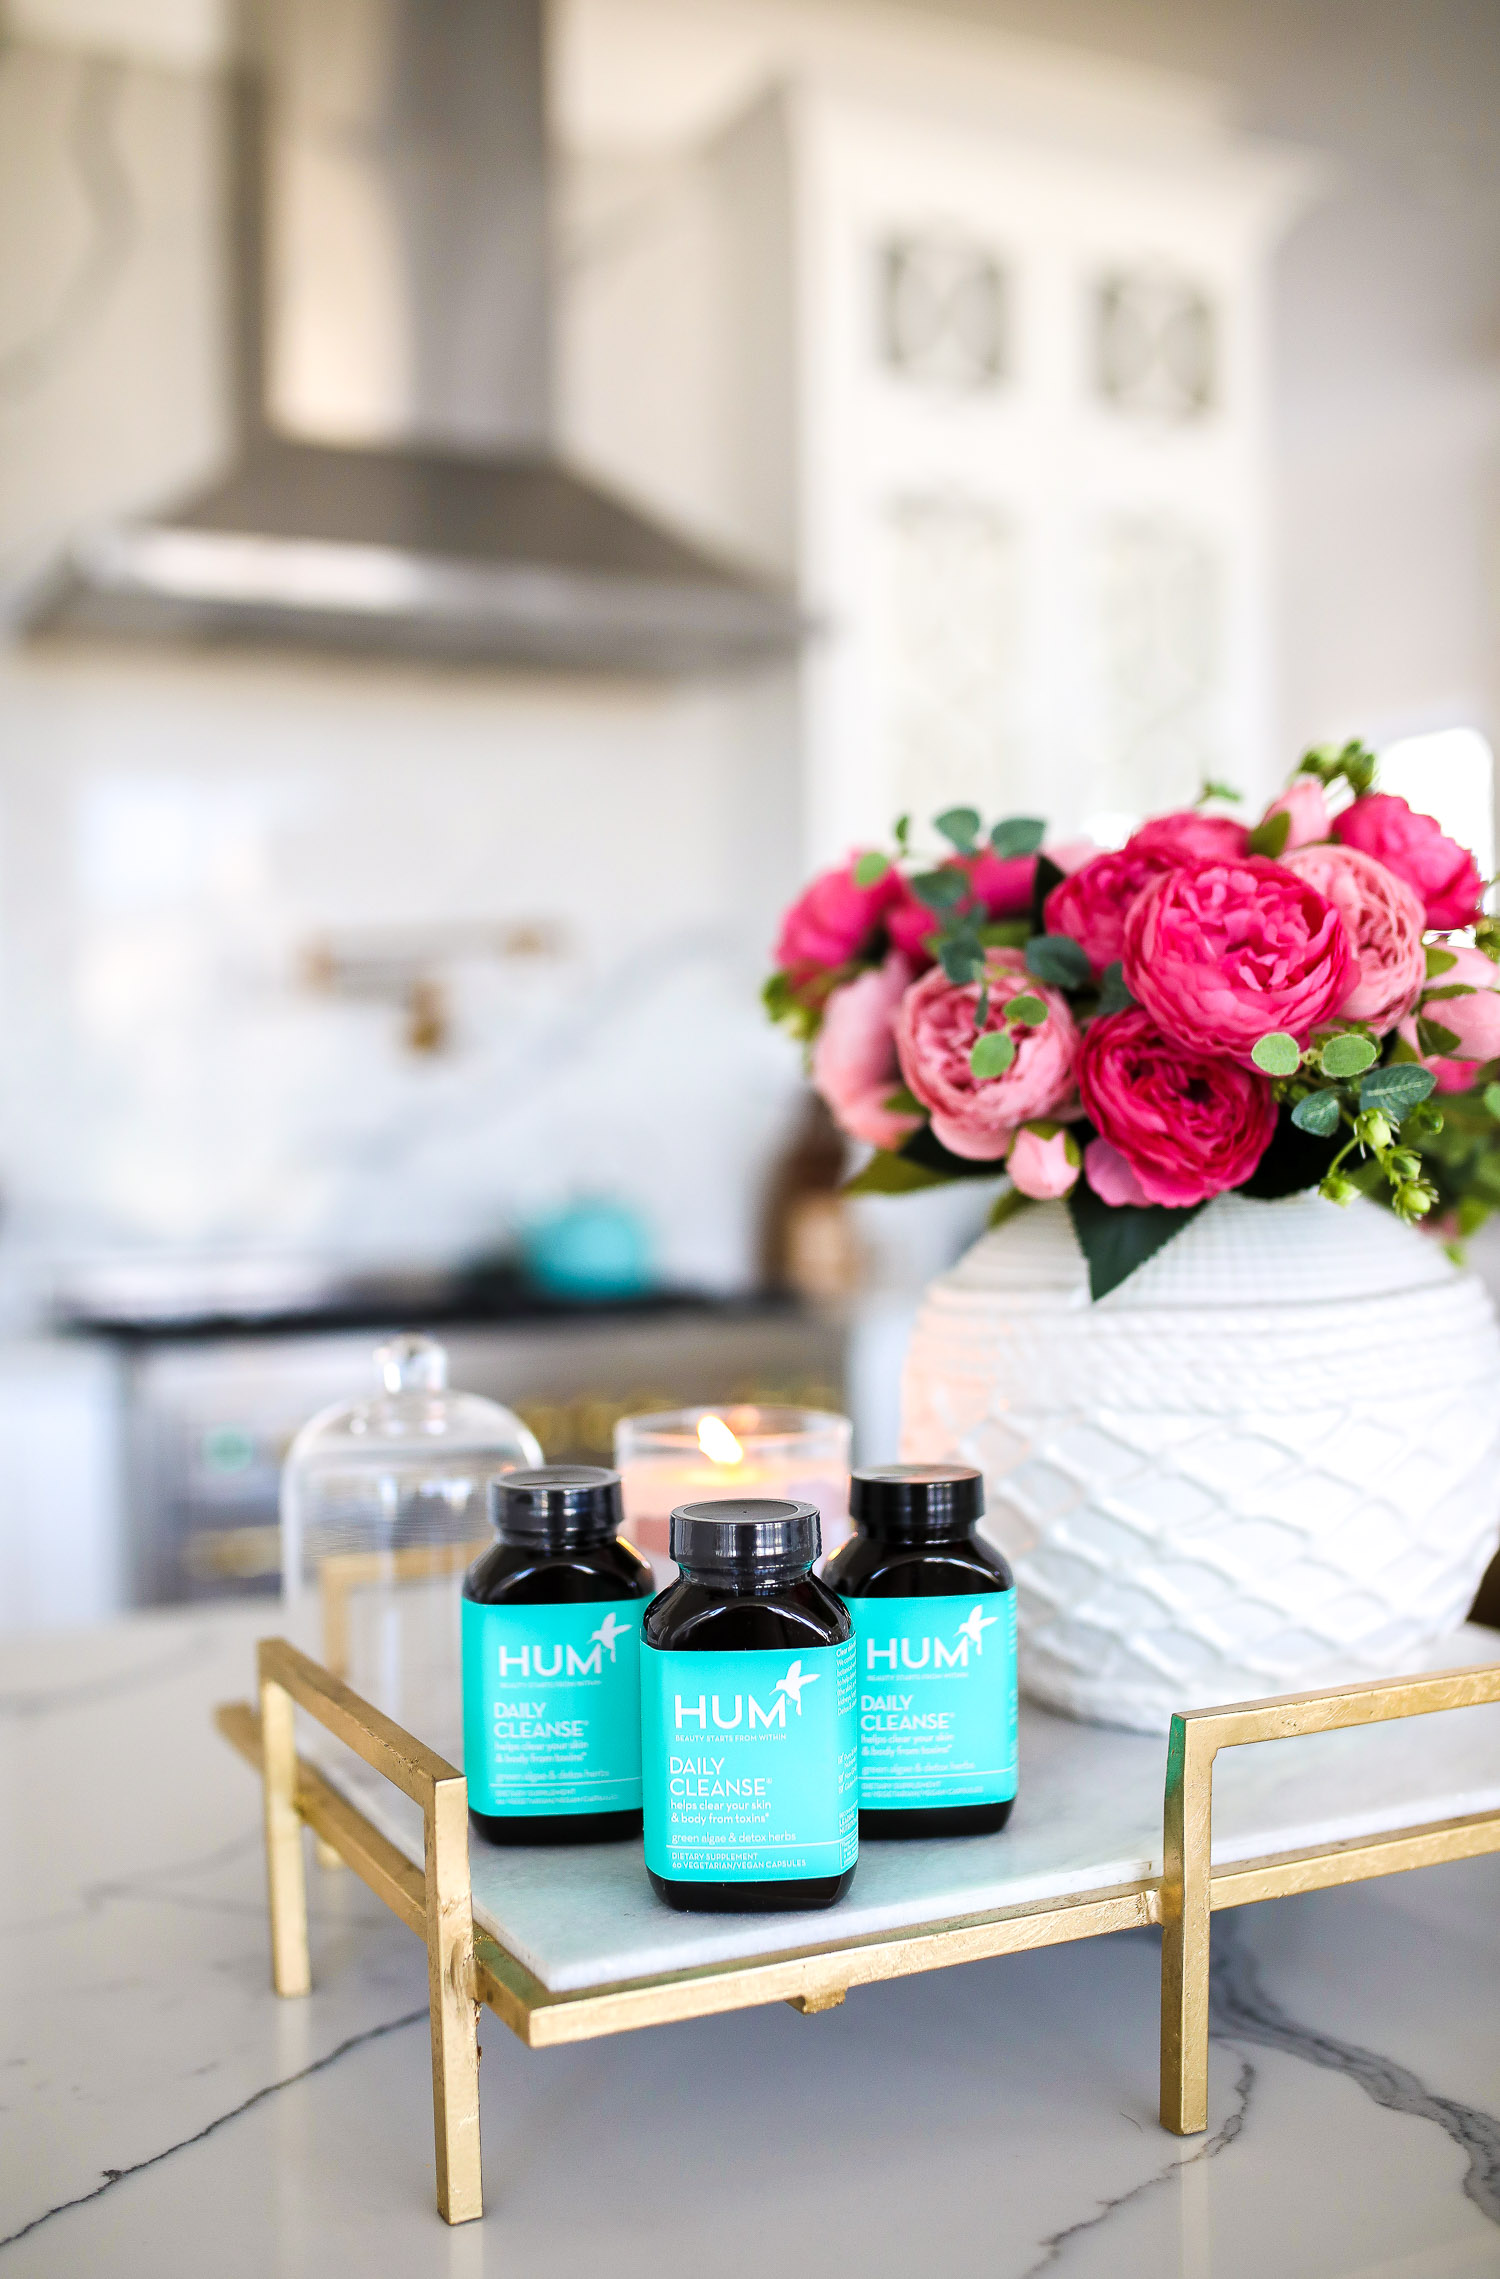 hum nutrition daily cleanse supplements, skin clearing vitamins, green algae vitamins, emily gemma skincare routine | Hum Daily Cleanse by popular US lifestyle blog, The Sweetest Thing: image of three bottles of Hum Daily Cleanse supplements next to a white ceramic vase filled with pink roses.